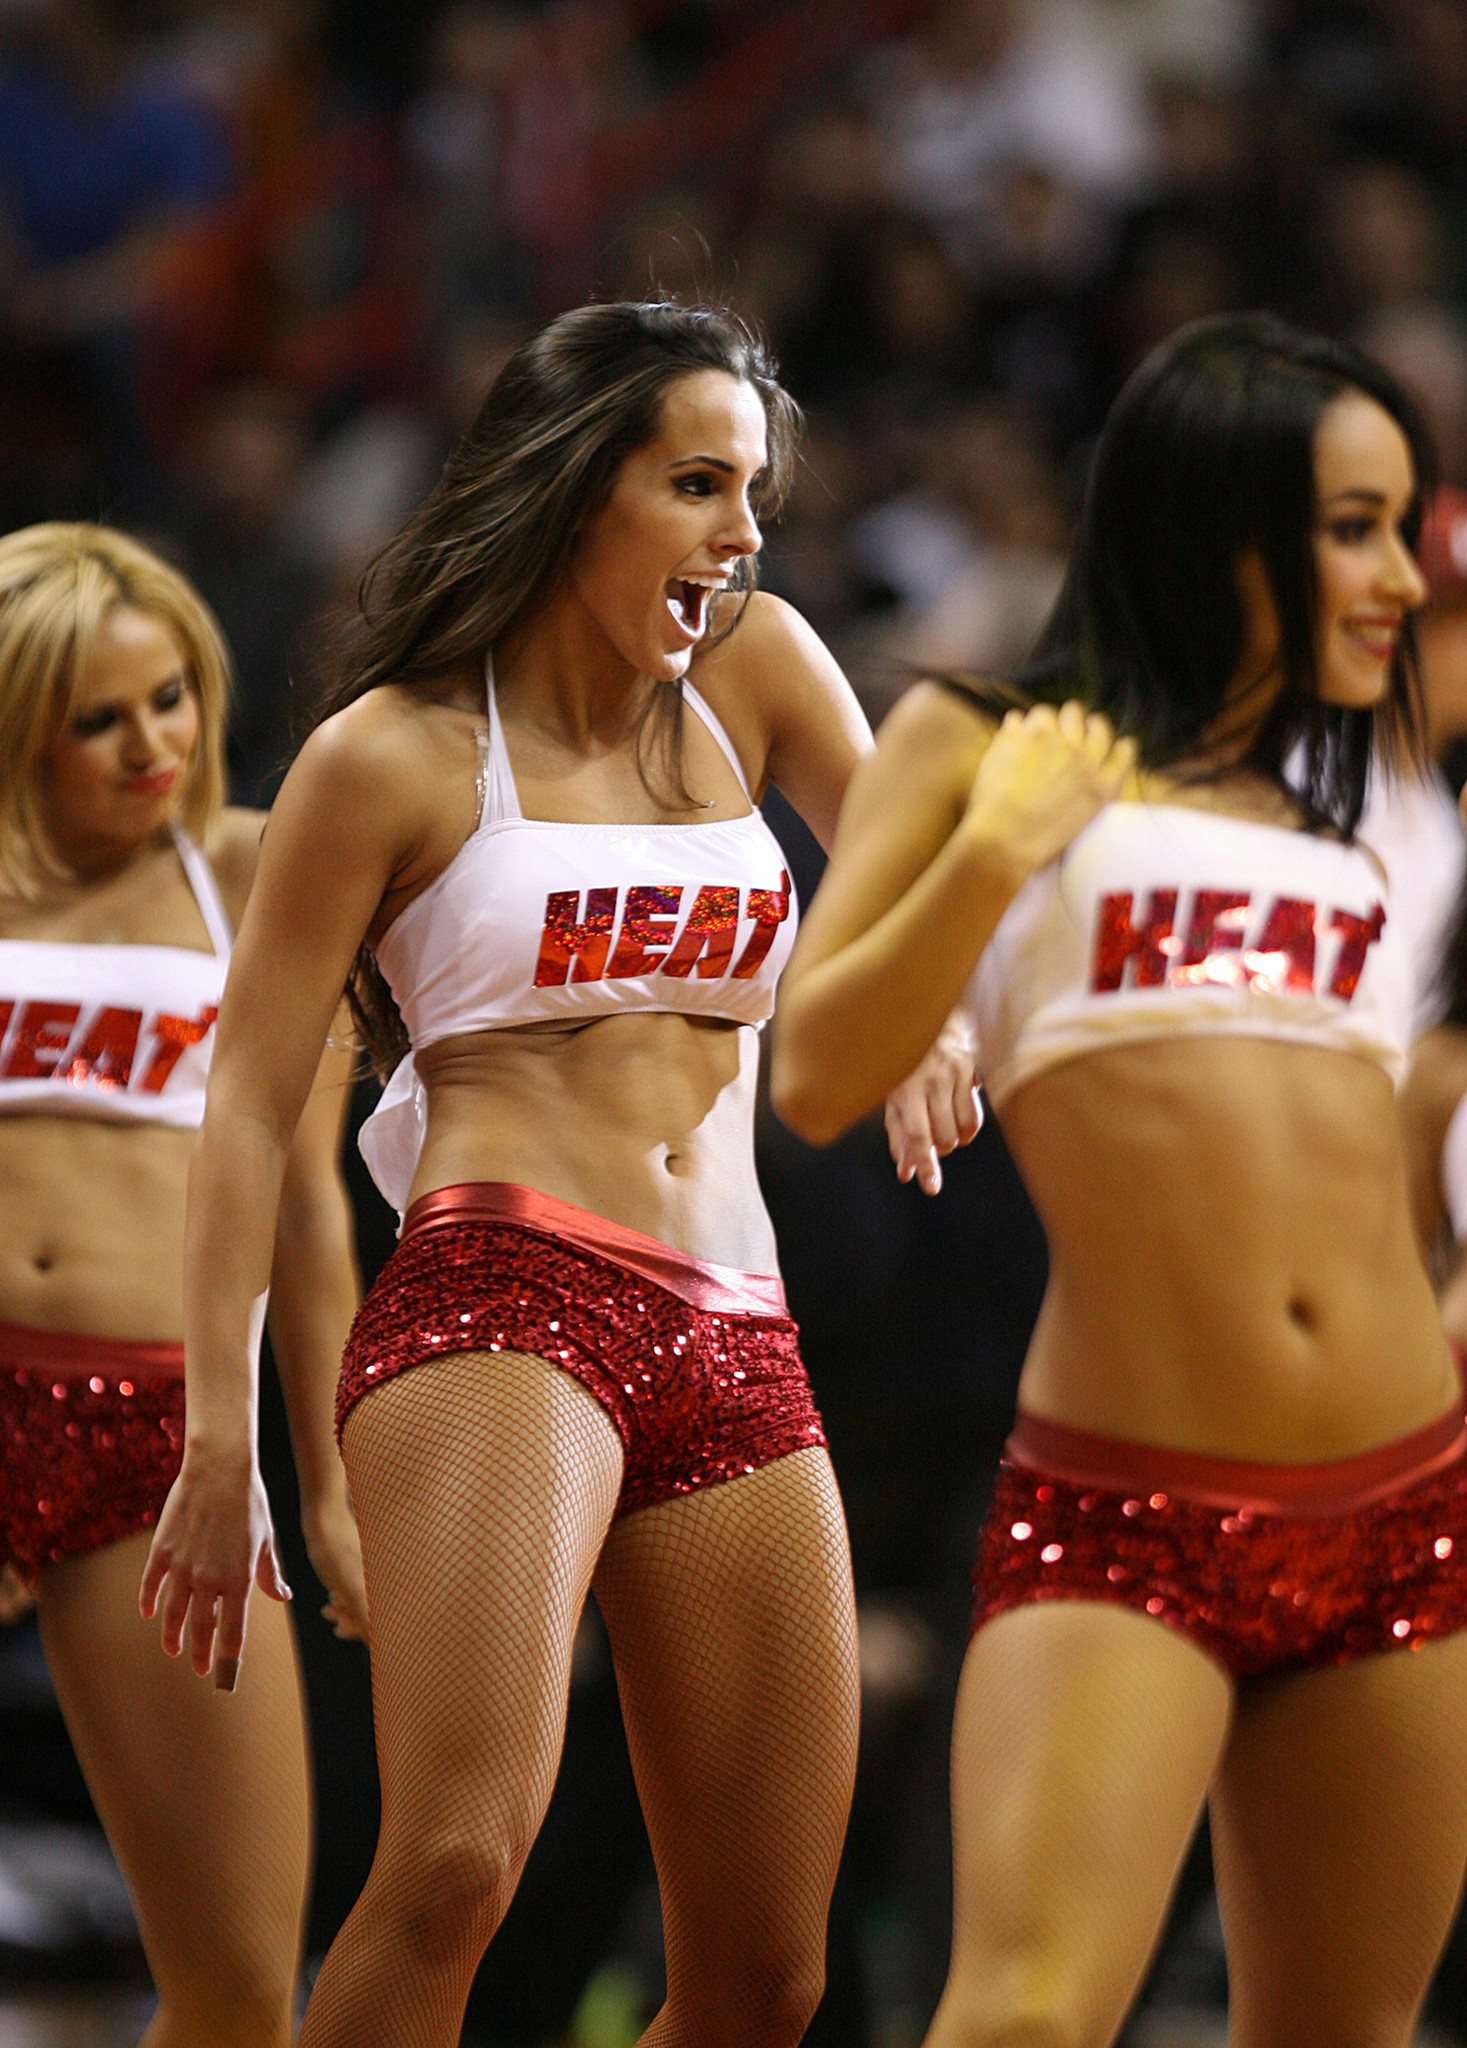 <b>Photos:</b> Miami Heat Dancers in action - Bulls v Heat